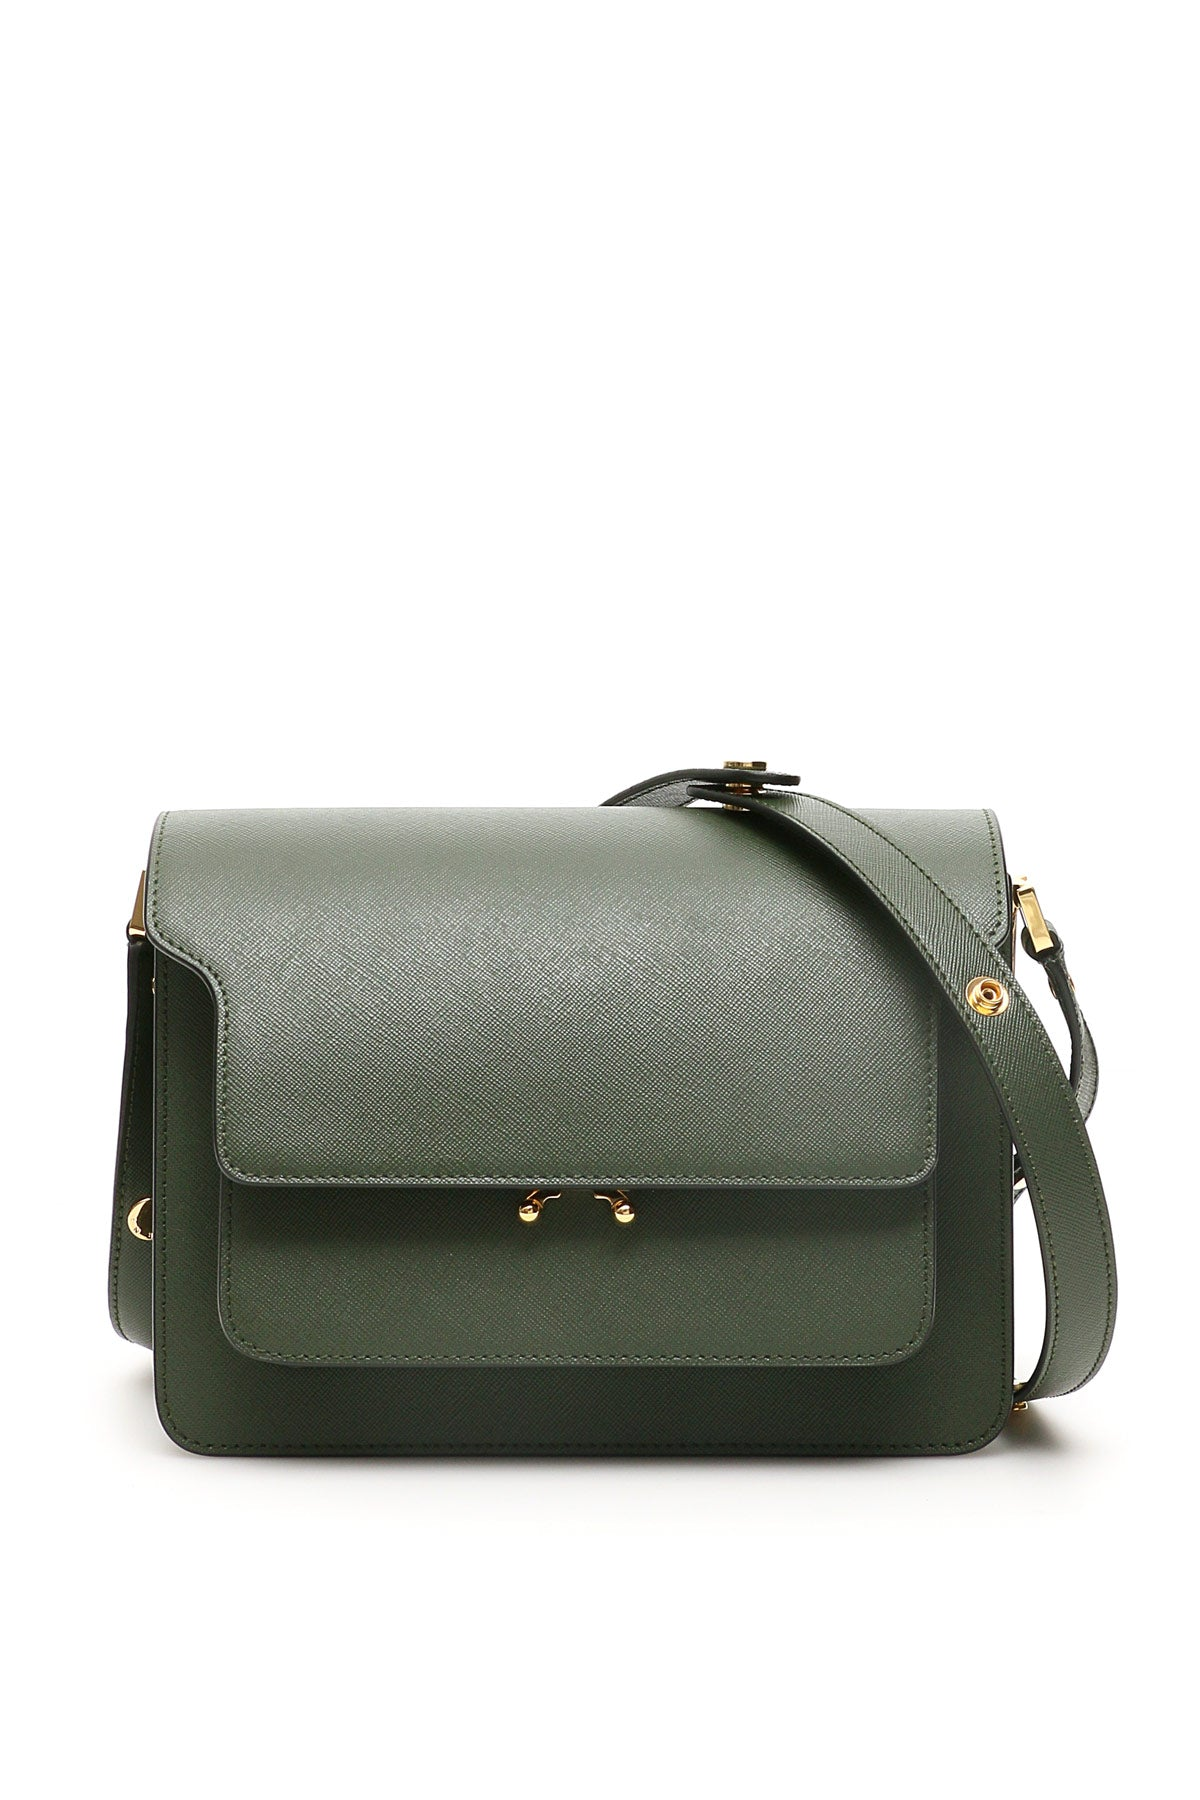 Marni MARNI TRUNK BAG